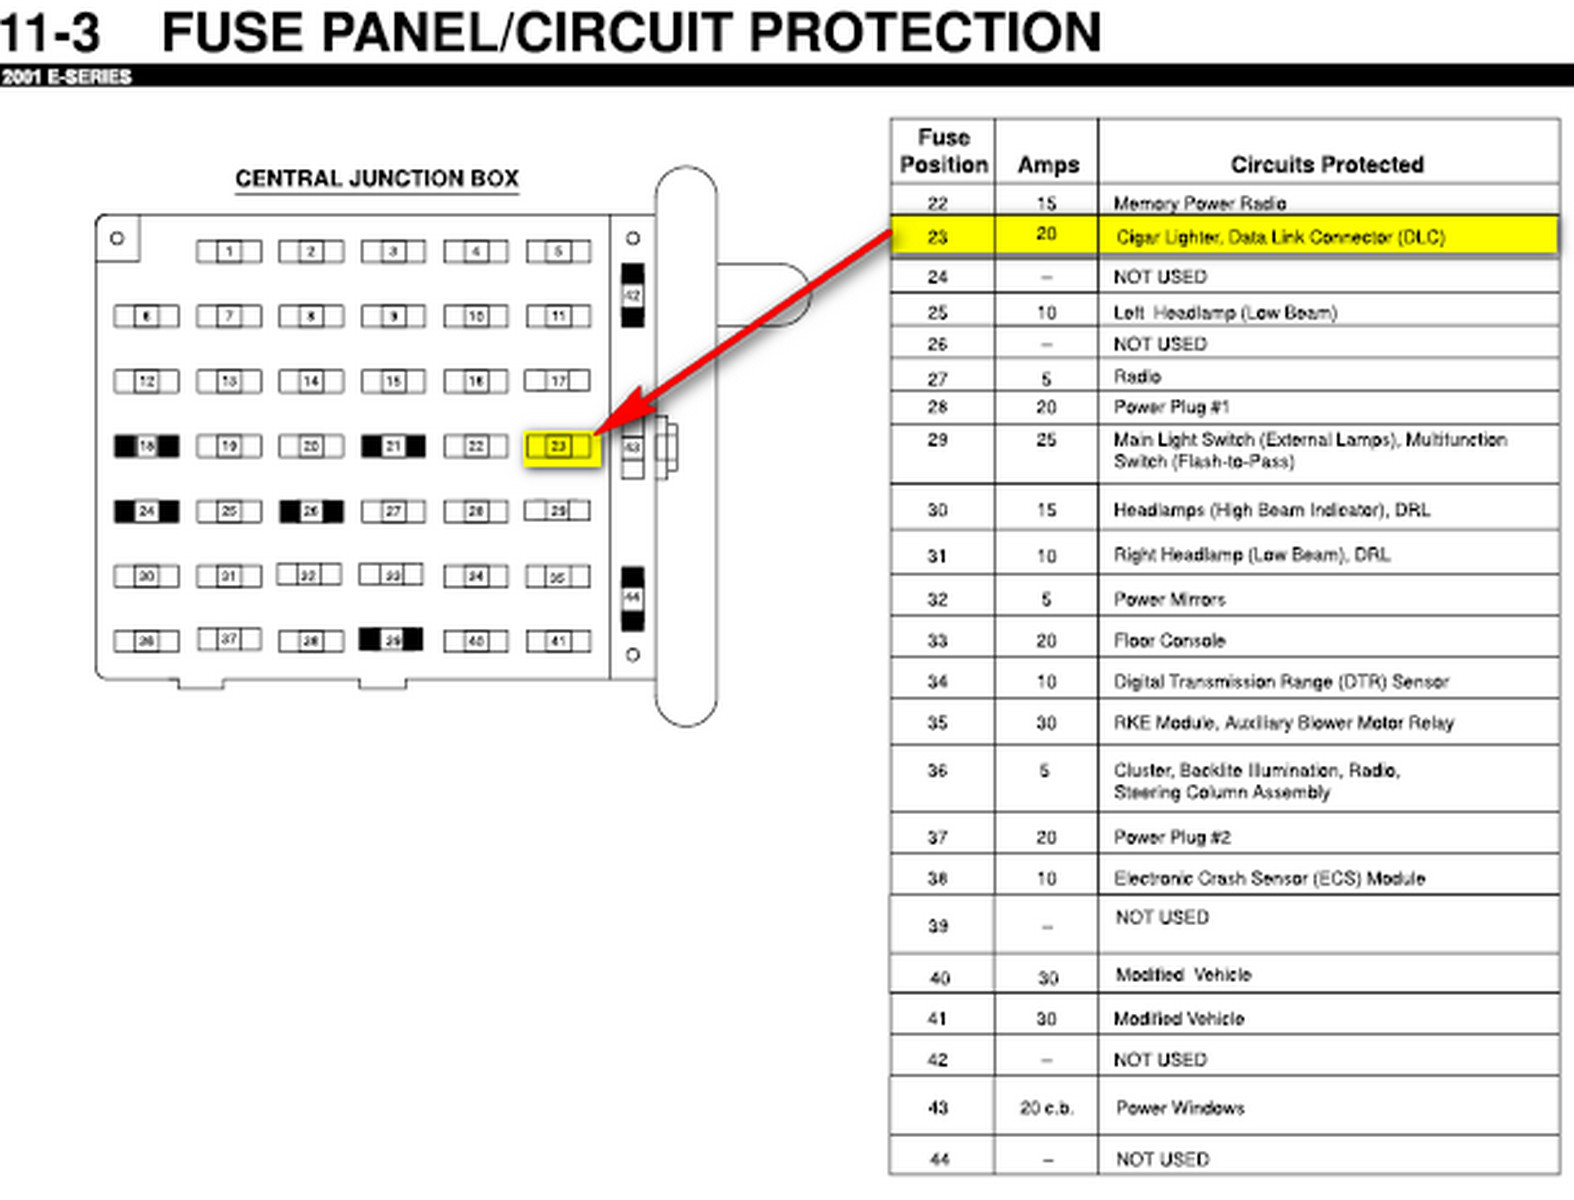 Ford E350 Fuse Box Diagram 2001 List Of Schematic Circuit Image Details Rh Motogurumag Com